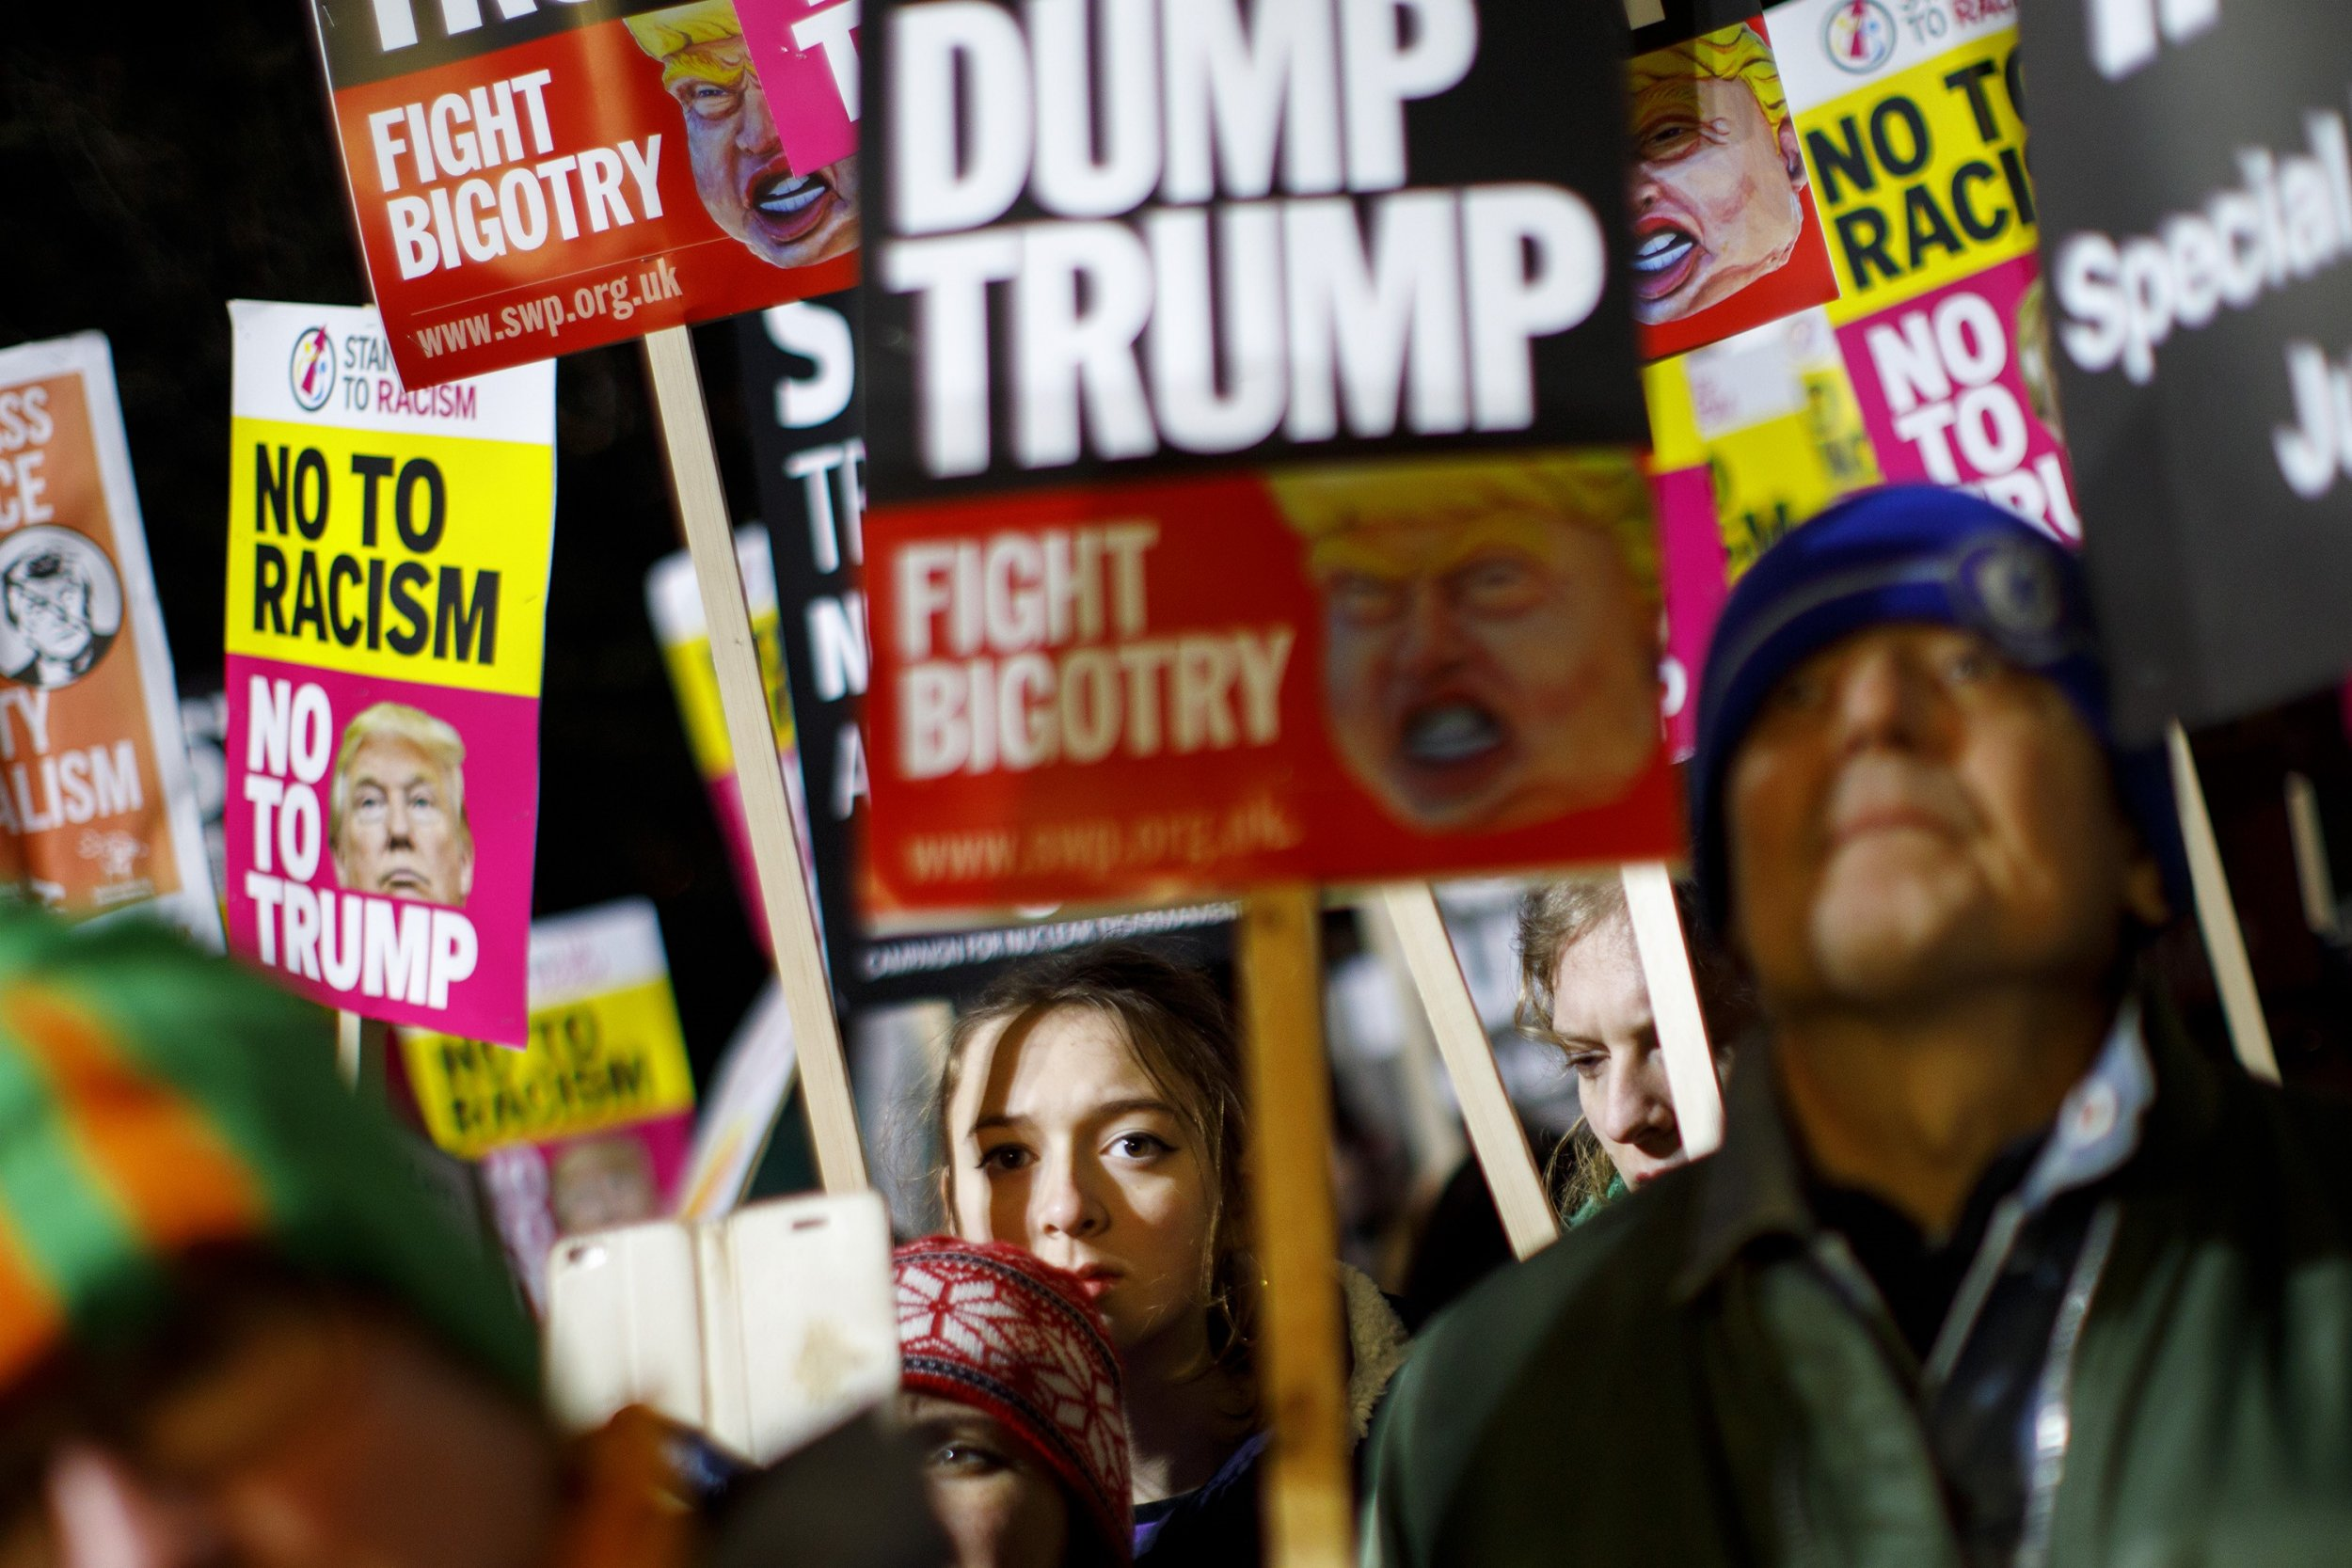 LONDON, UNITED KINGDOM - JANUARY 20: People protest against the inauguration of the 45th President of the United States, Donald Trump outside the London US Embassy in London, United Kingdom on January 20, 2017. (Photo by Tolga Akmen/Anadolu Agency/Getty Images)